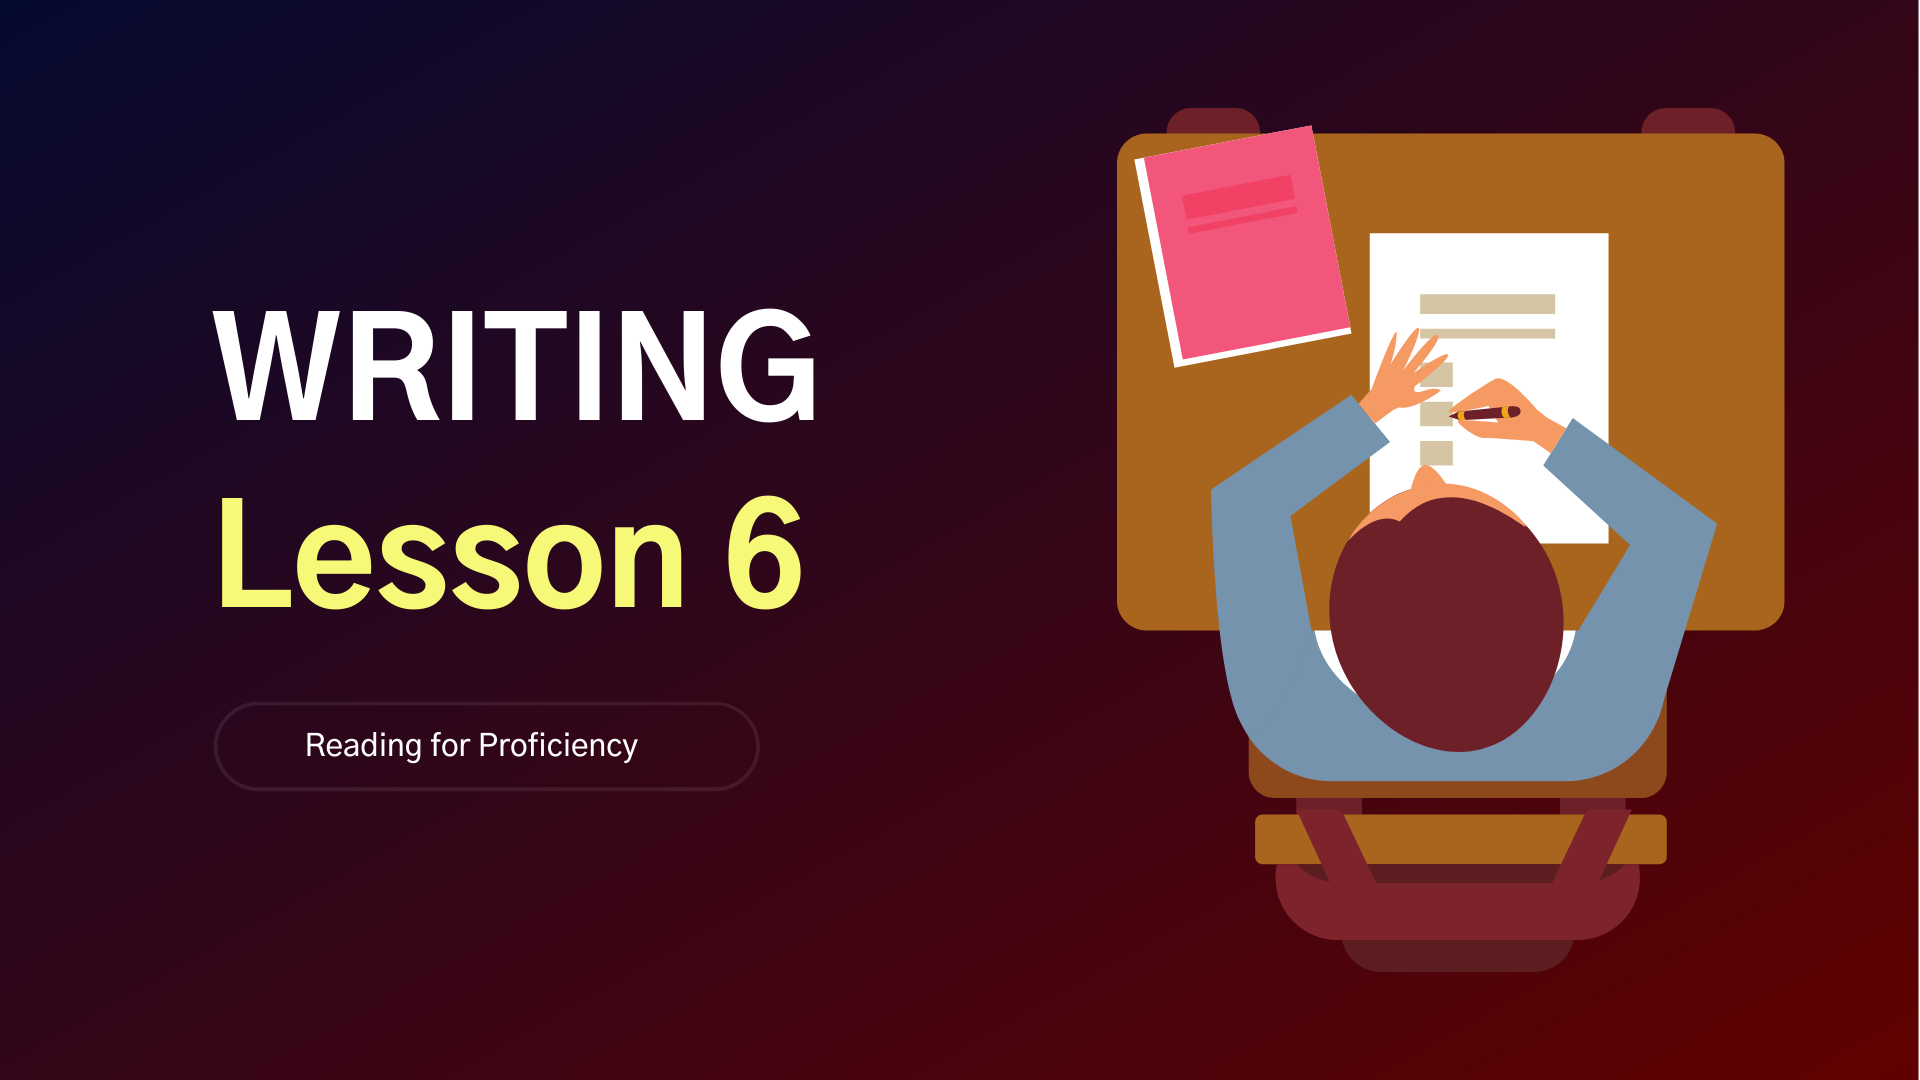 Lesson 6 - Writing for Proficiency